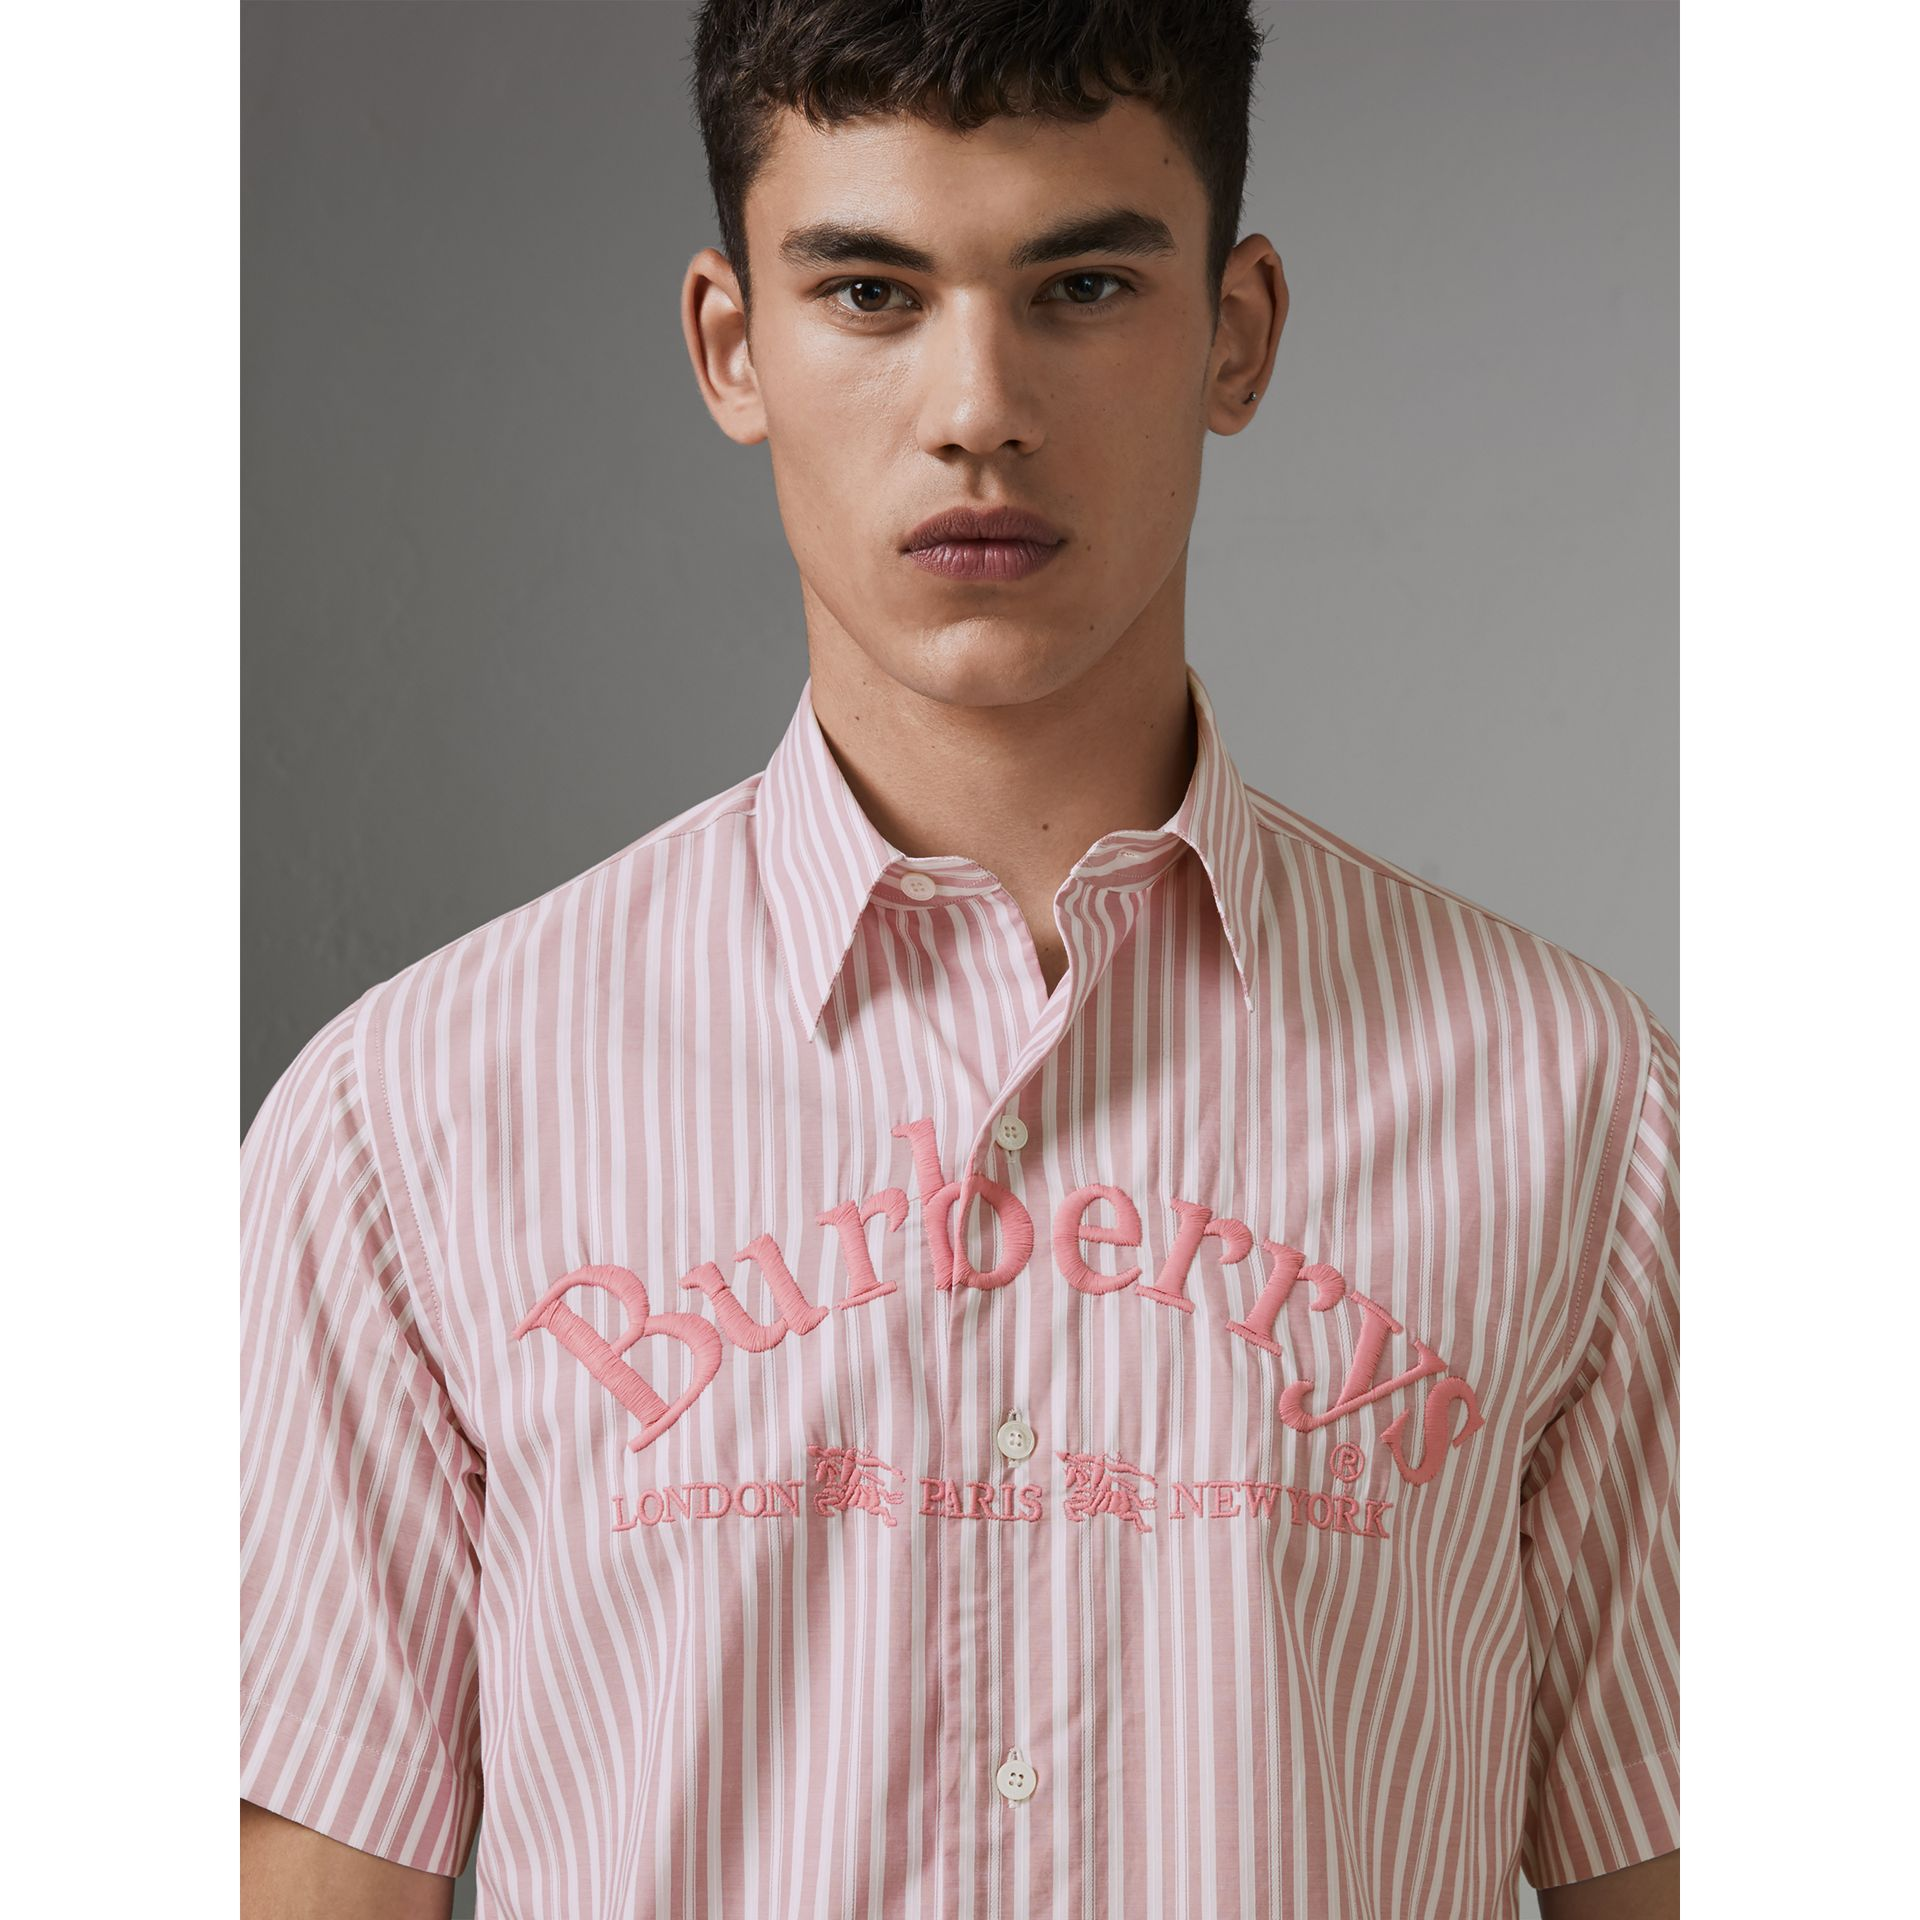 Embroidered Archive Logo Striped Short-sleeve Shirt in Light Pink - Men | Burberry Australia - gallery image 1